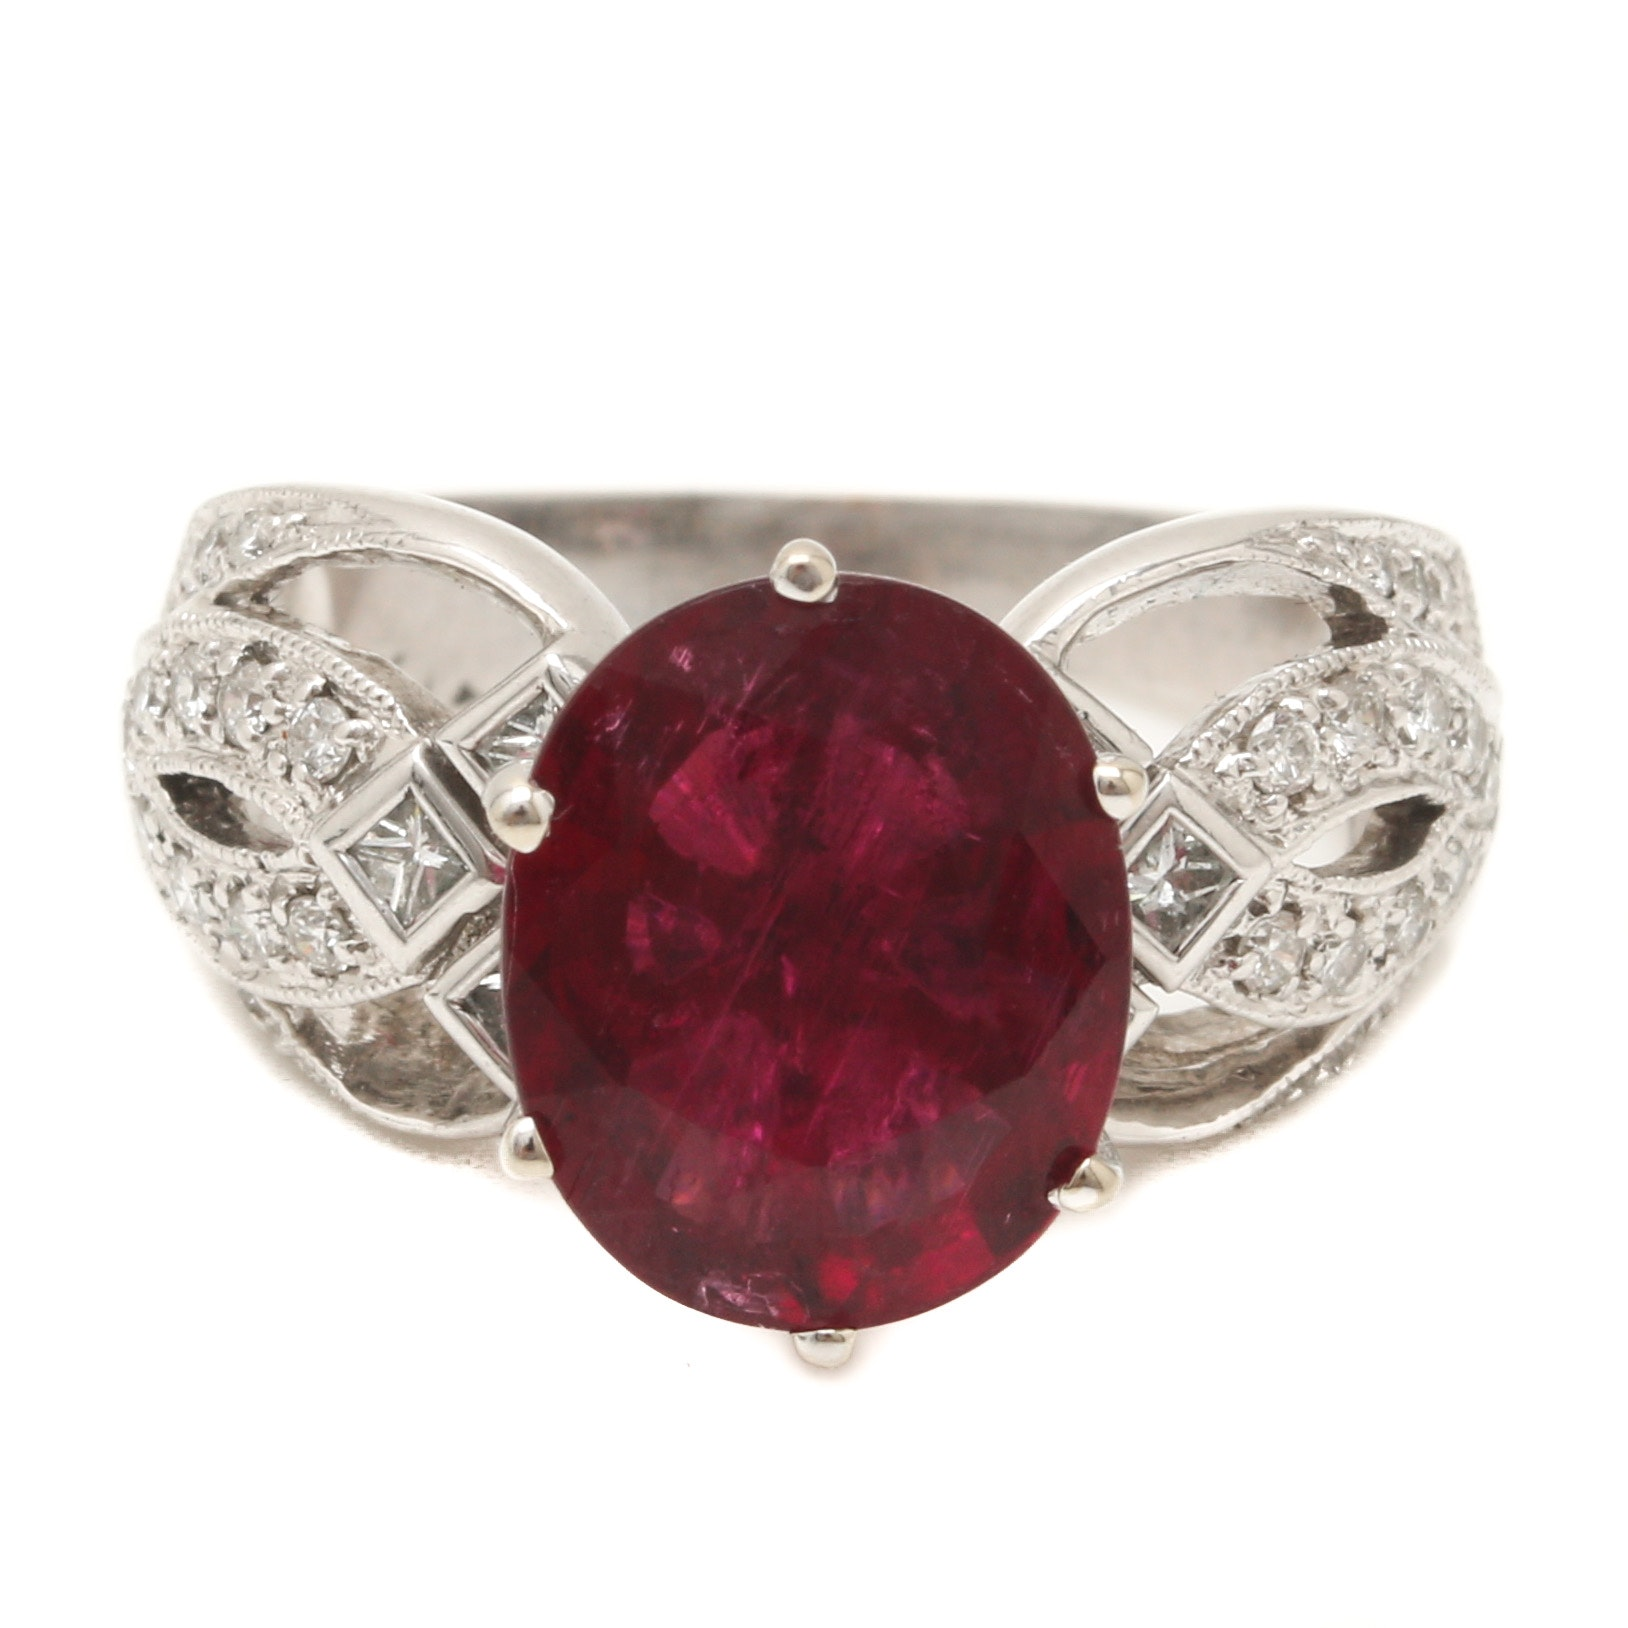 18K White Gold 2.77 CT Rubellite and Diamond Ring